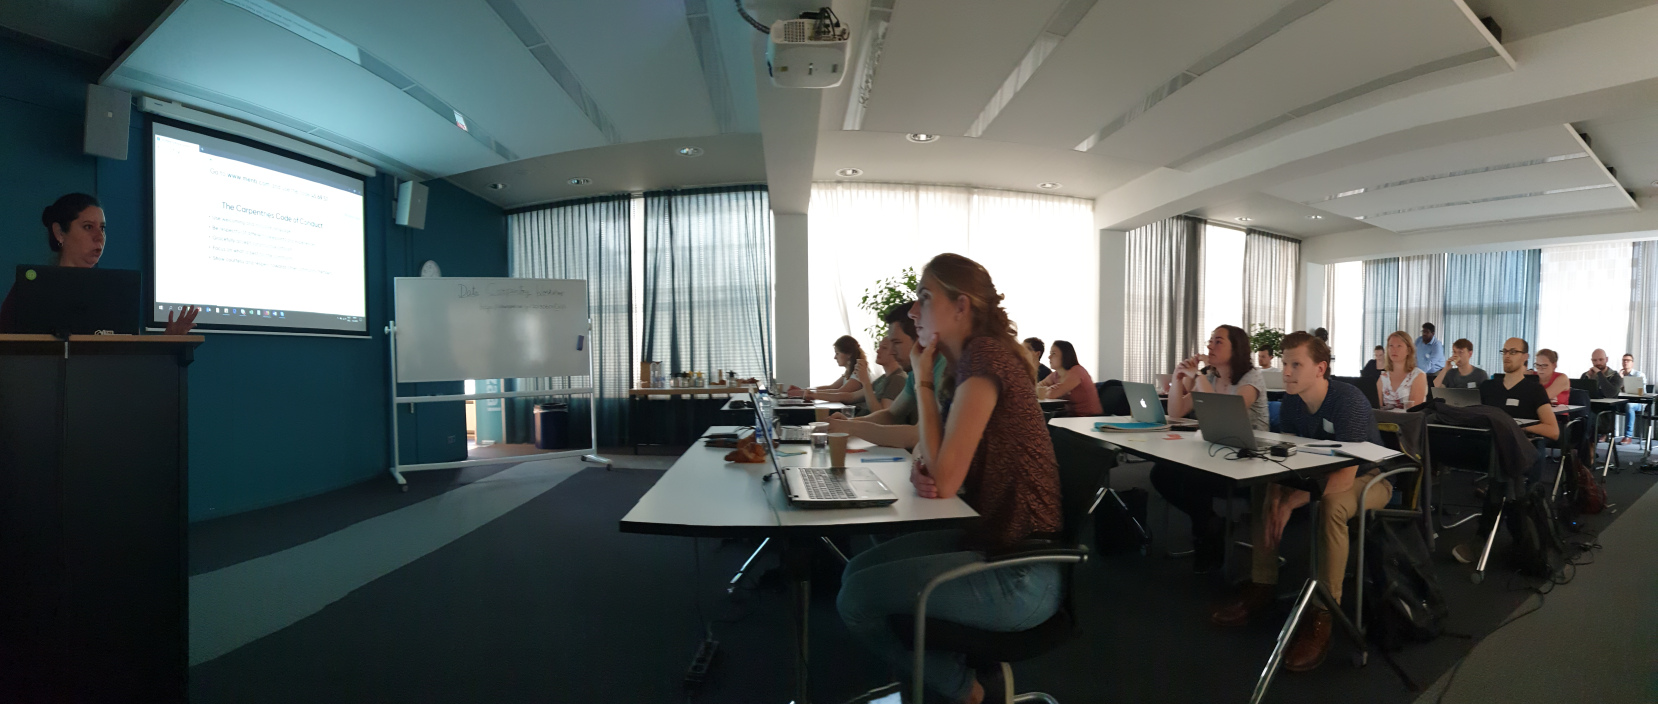 Researchers attend TU Delft's first Genomics Carpentry to 'shape up' their data science skills